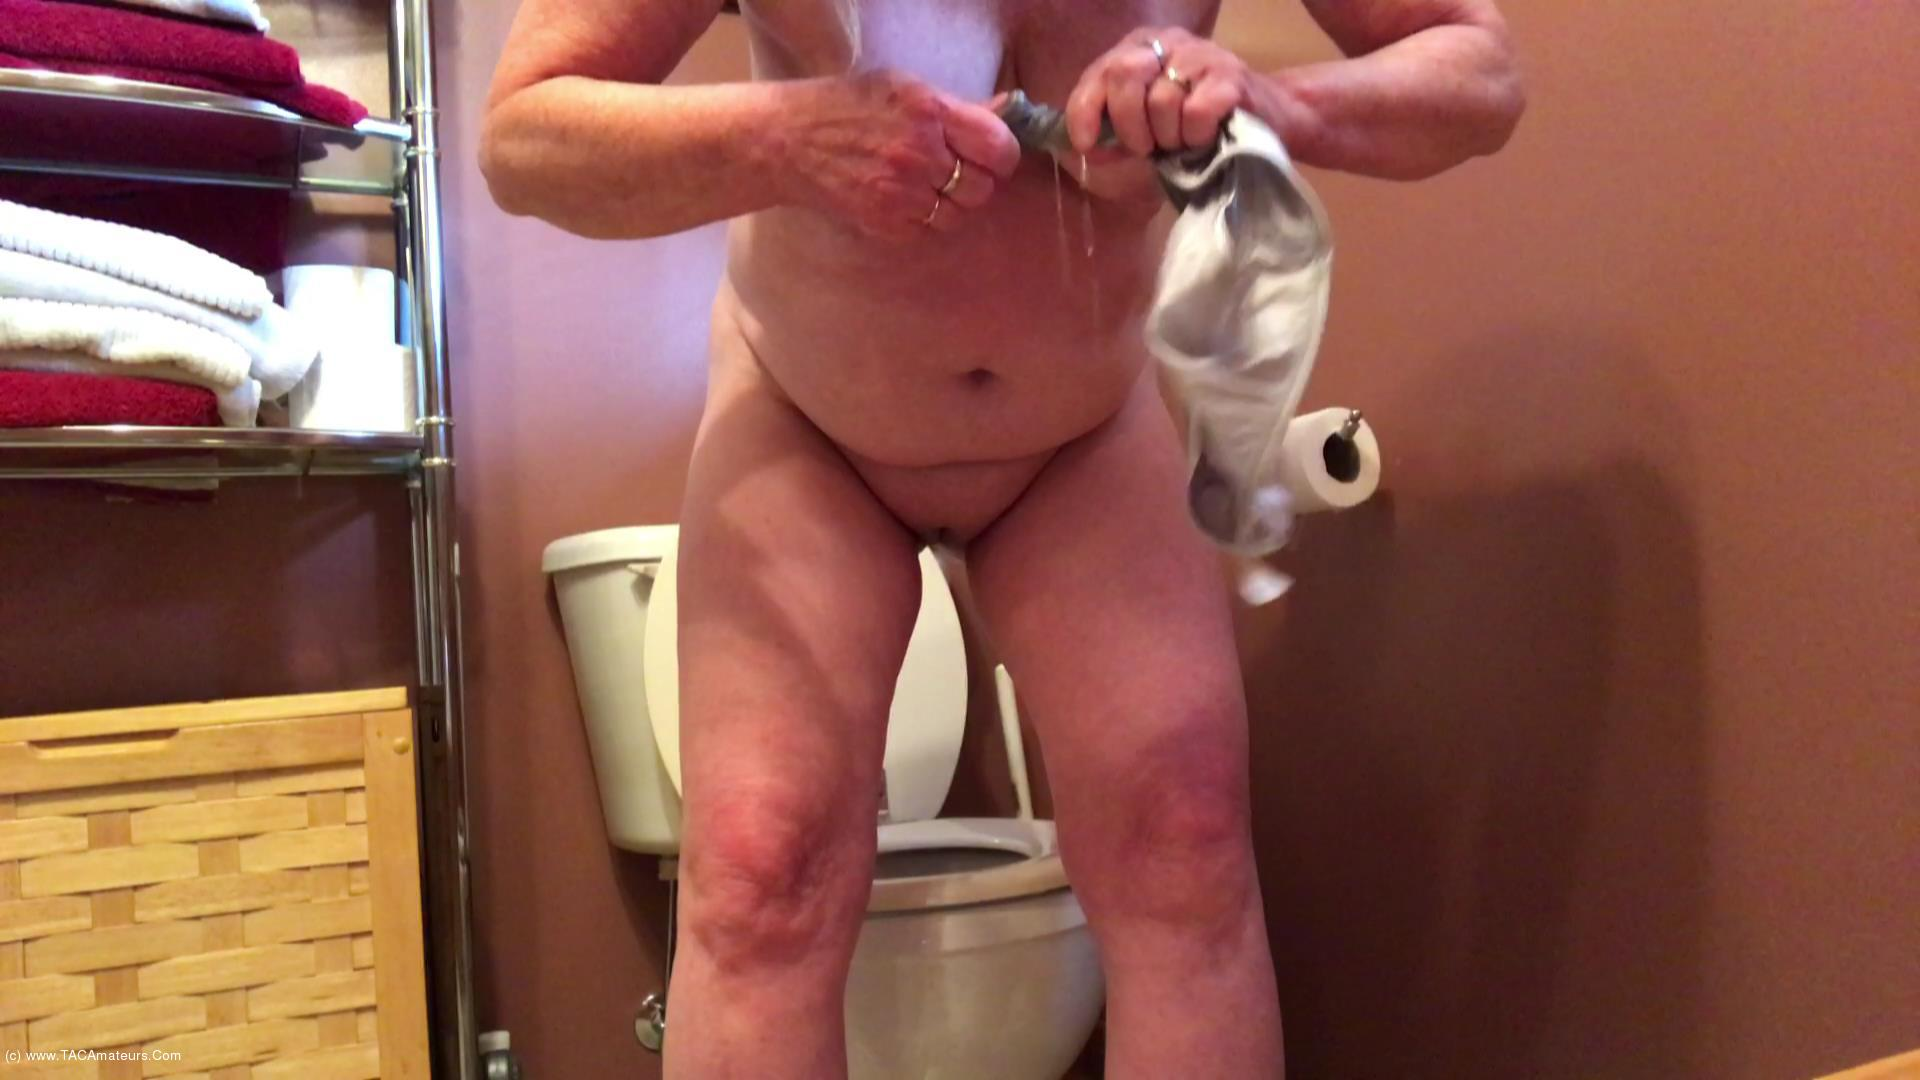 CougarBabeJolee - Pissing In My Satin Panties, Come Here Toilet Boy scene 3